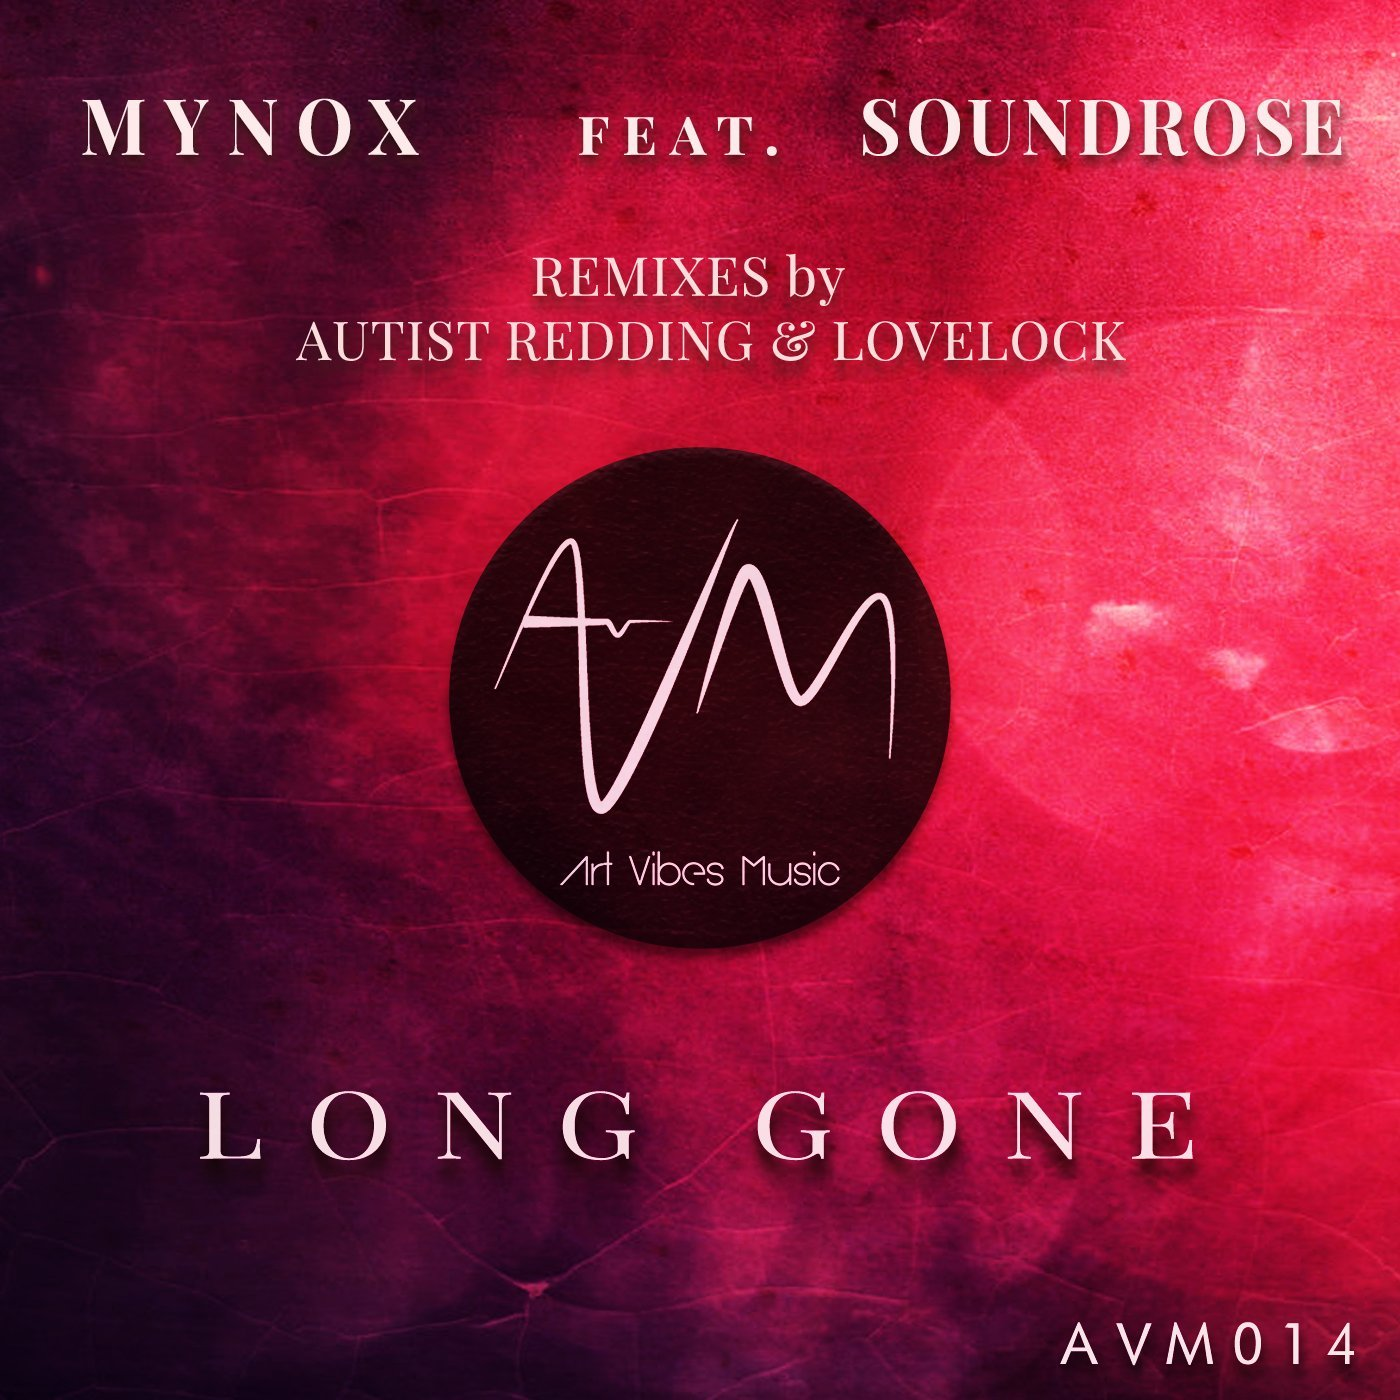 AVM014 Long Gone